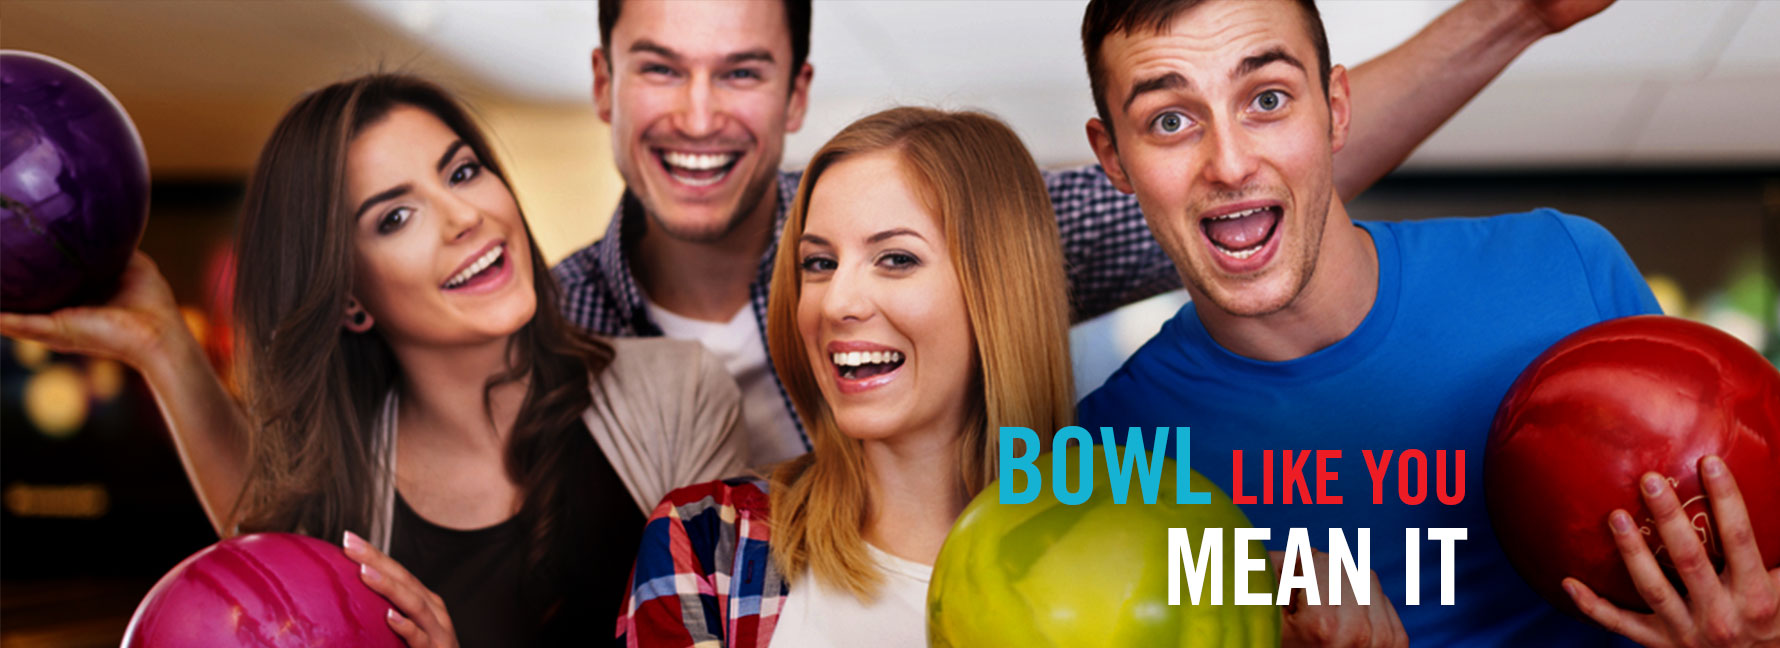 Oak Mountain Lanes Homepage. About Us. We are a Family Entertainment Center, featuring 32 Bowling Lanes, An Arcade Room, A Snack Bar, and Full Bar with Pool Tables.